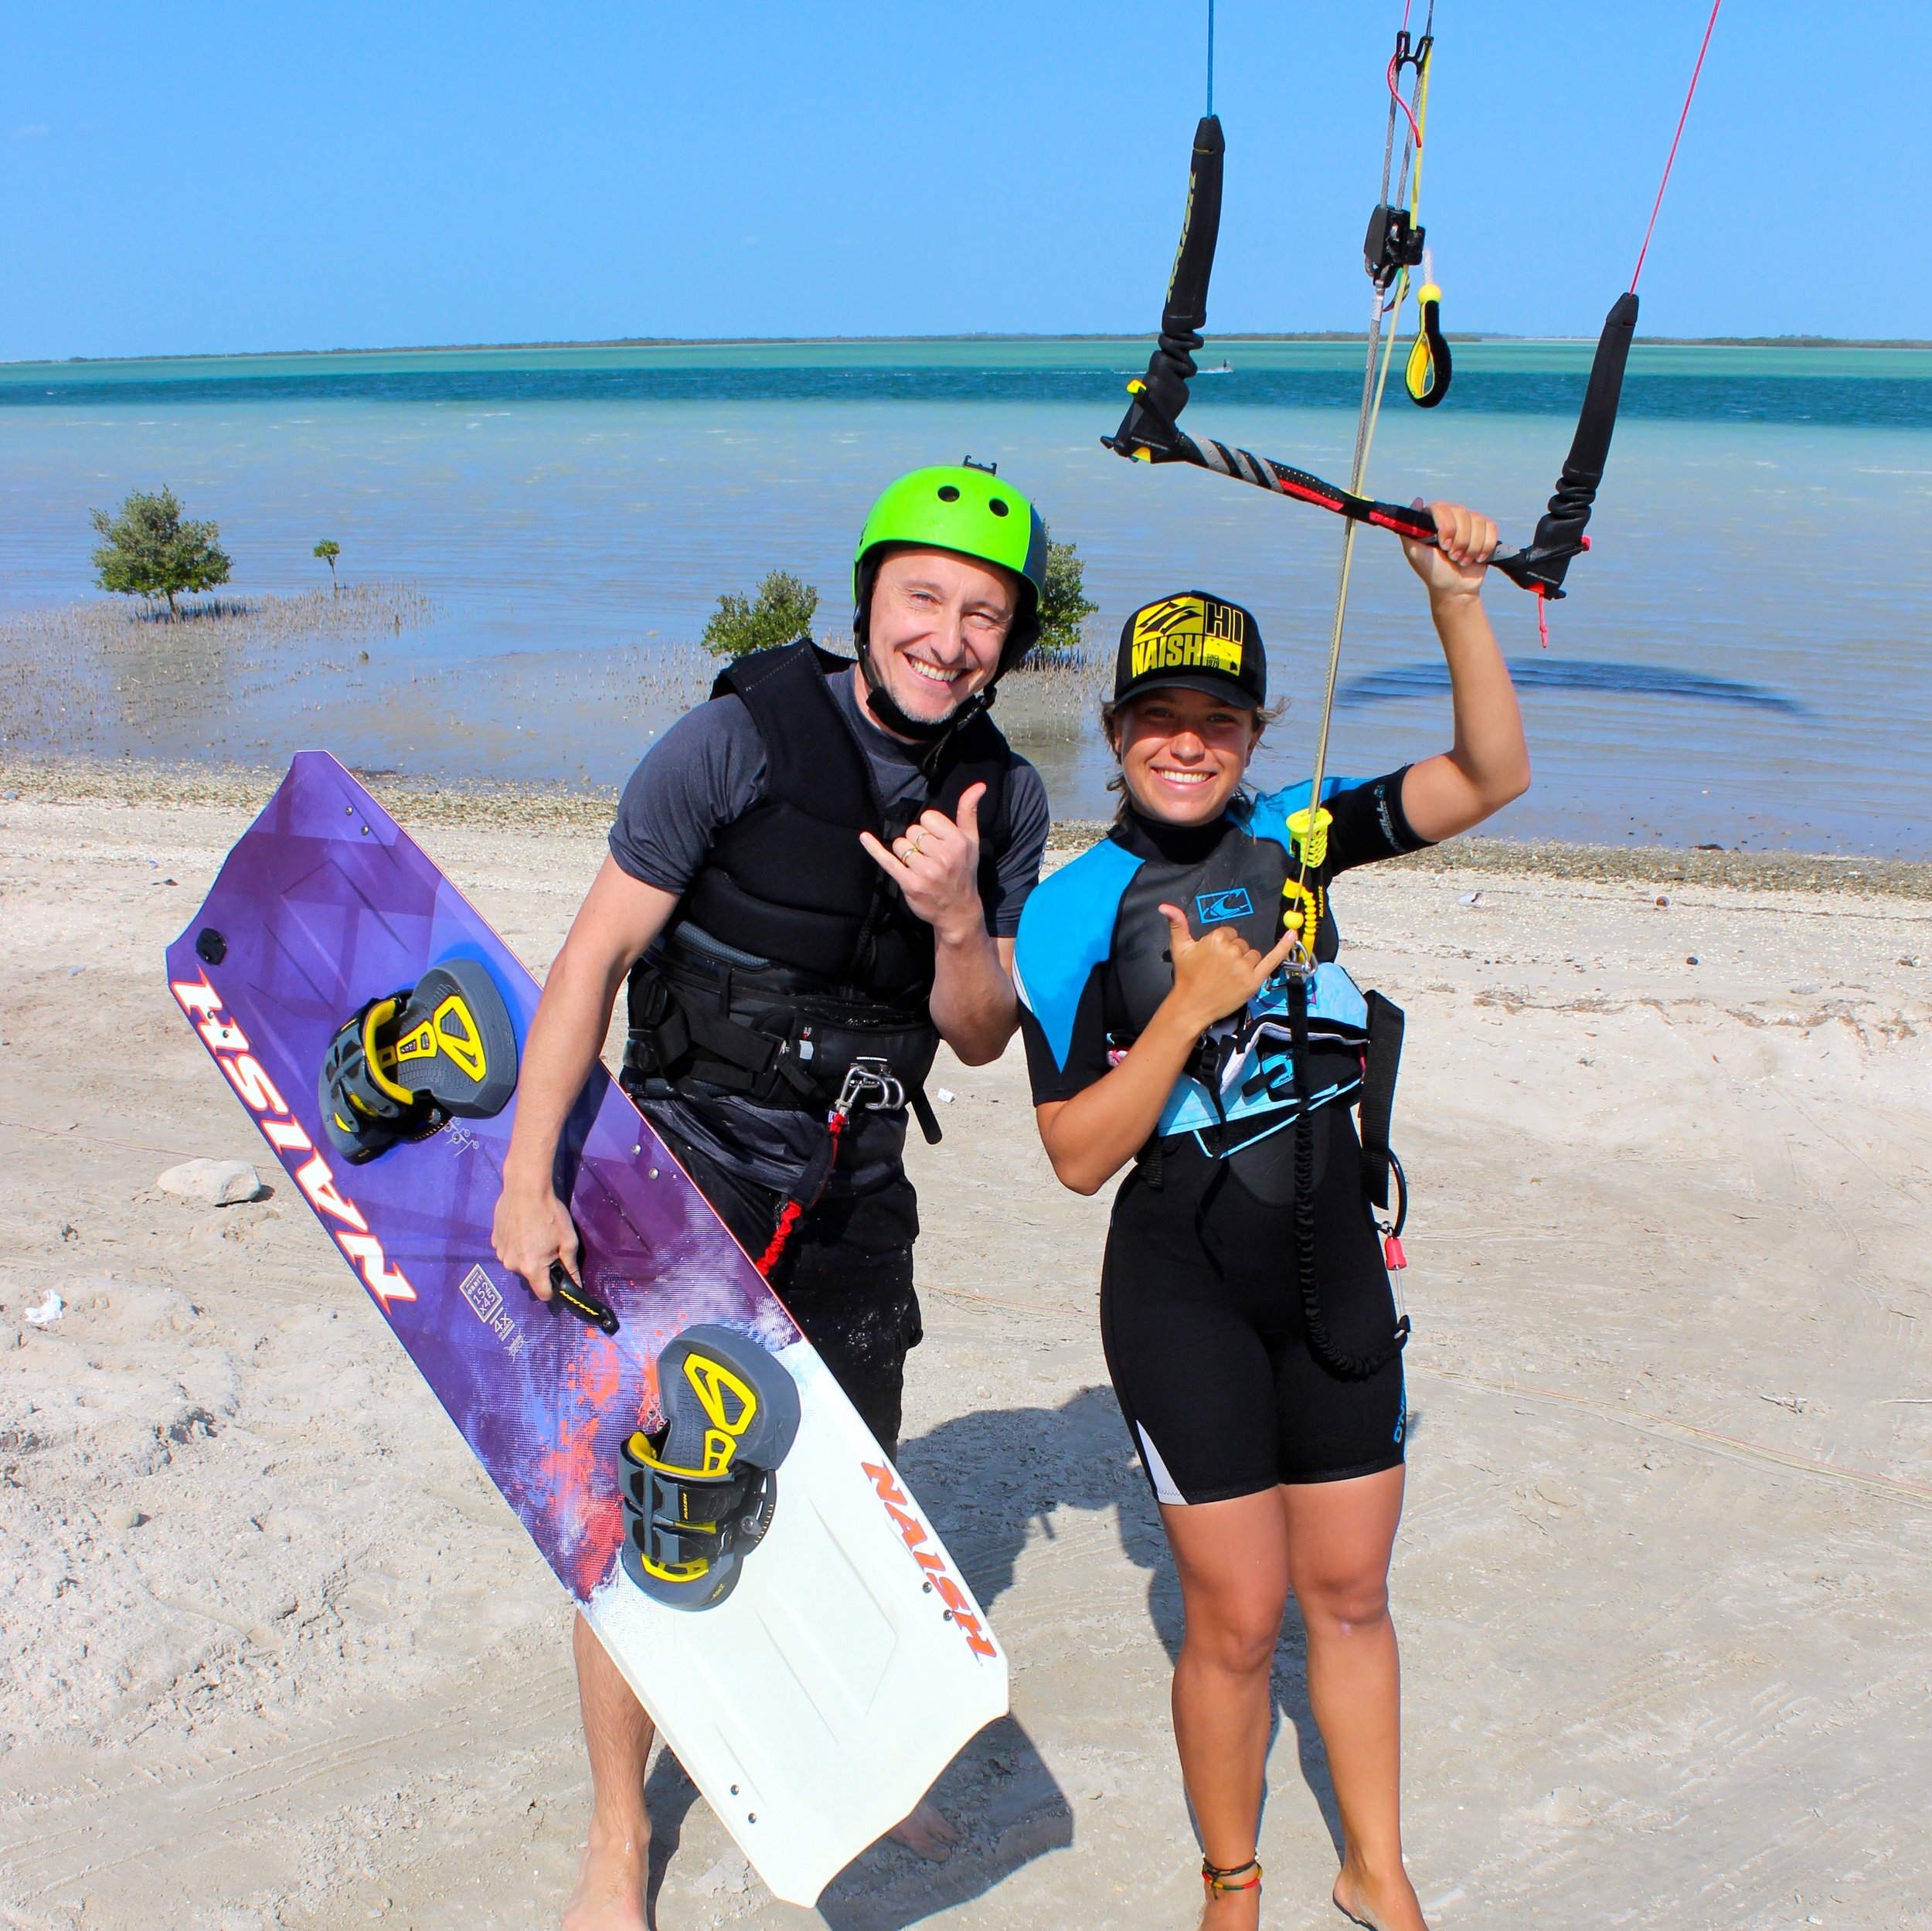 kitesurfing in Dubai - a great place to learn!